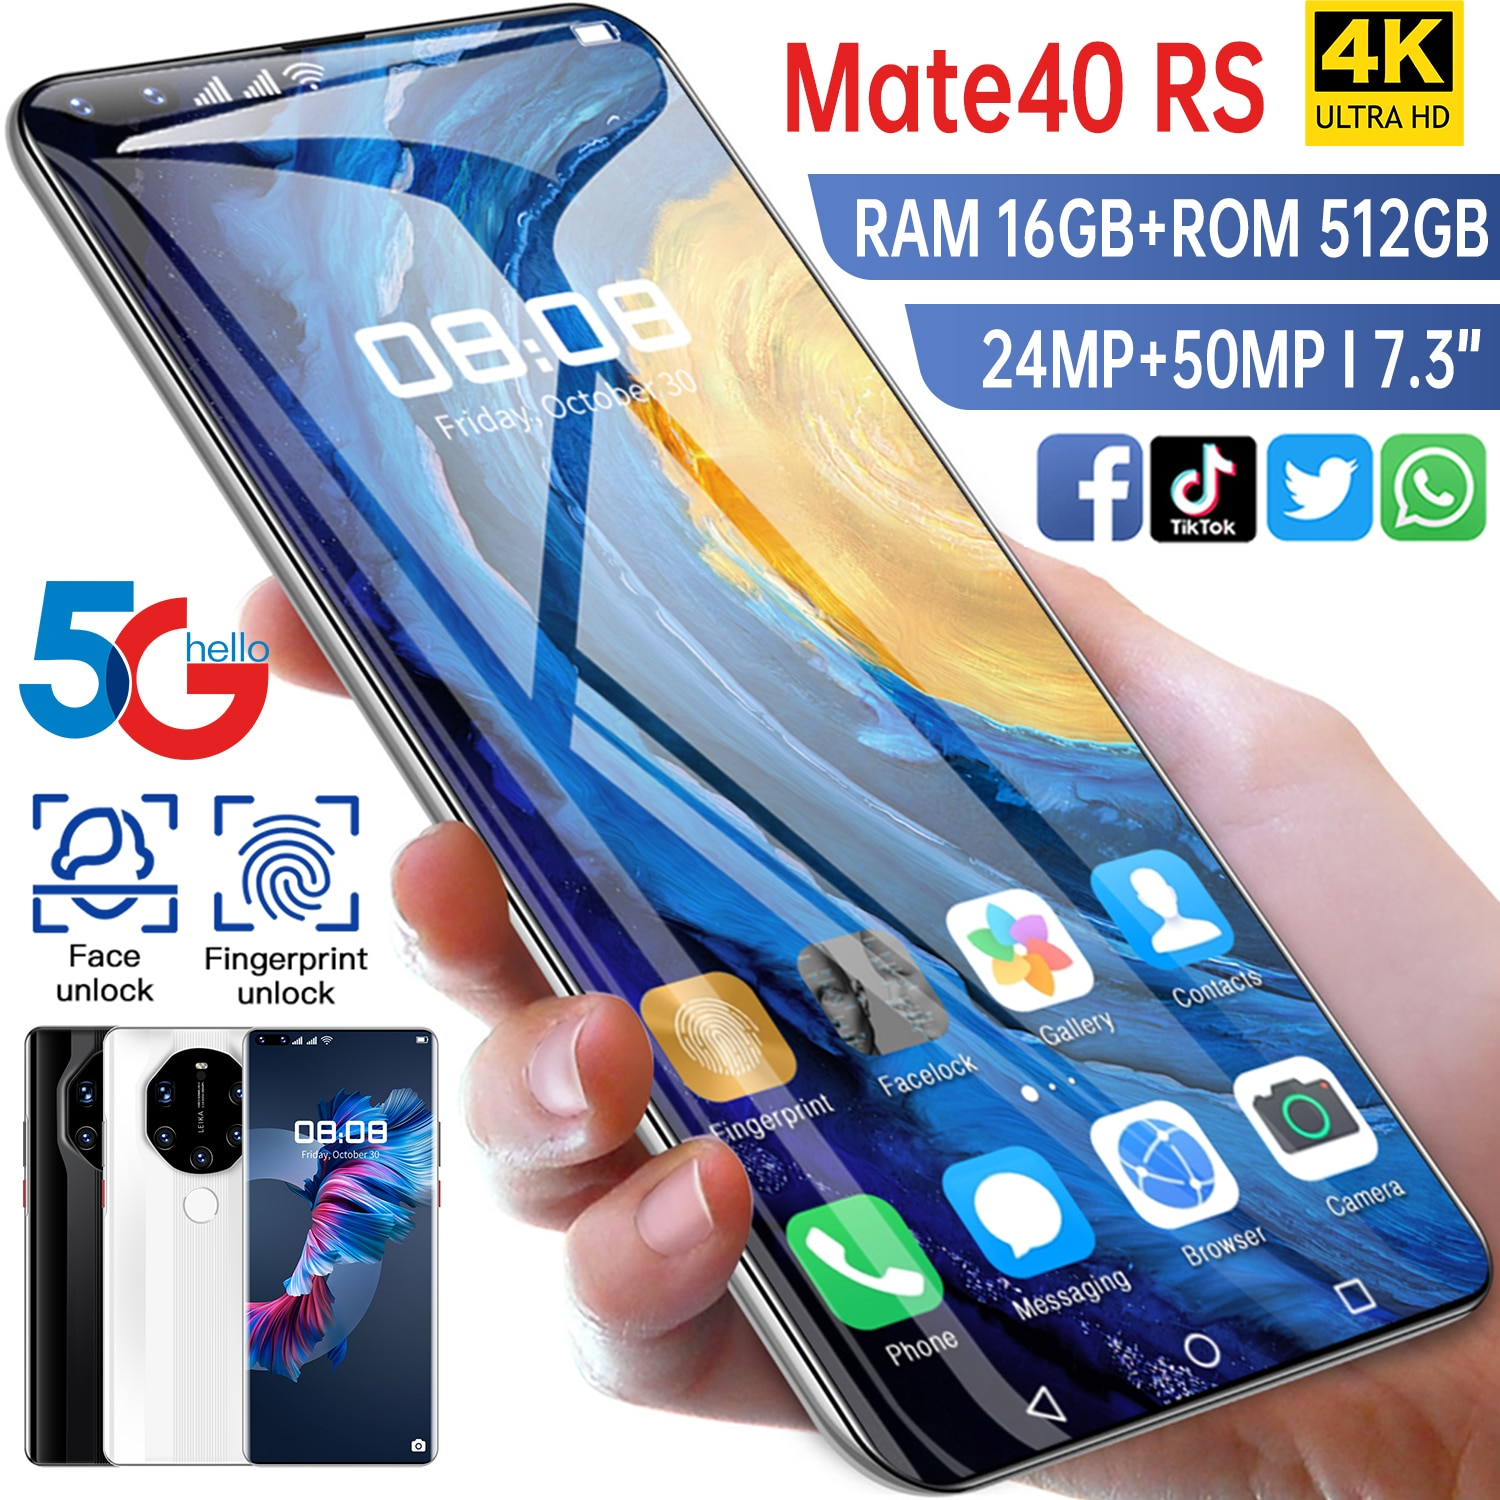 2021 New Smartpone Mate40 RS Global Version Smartphonr 16G 512G Android10 Unlocked 6800mAh Snapdrago